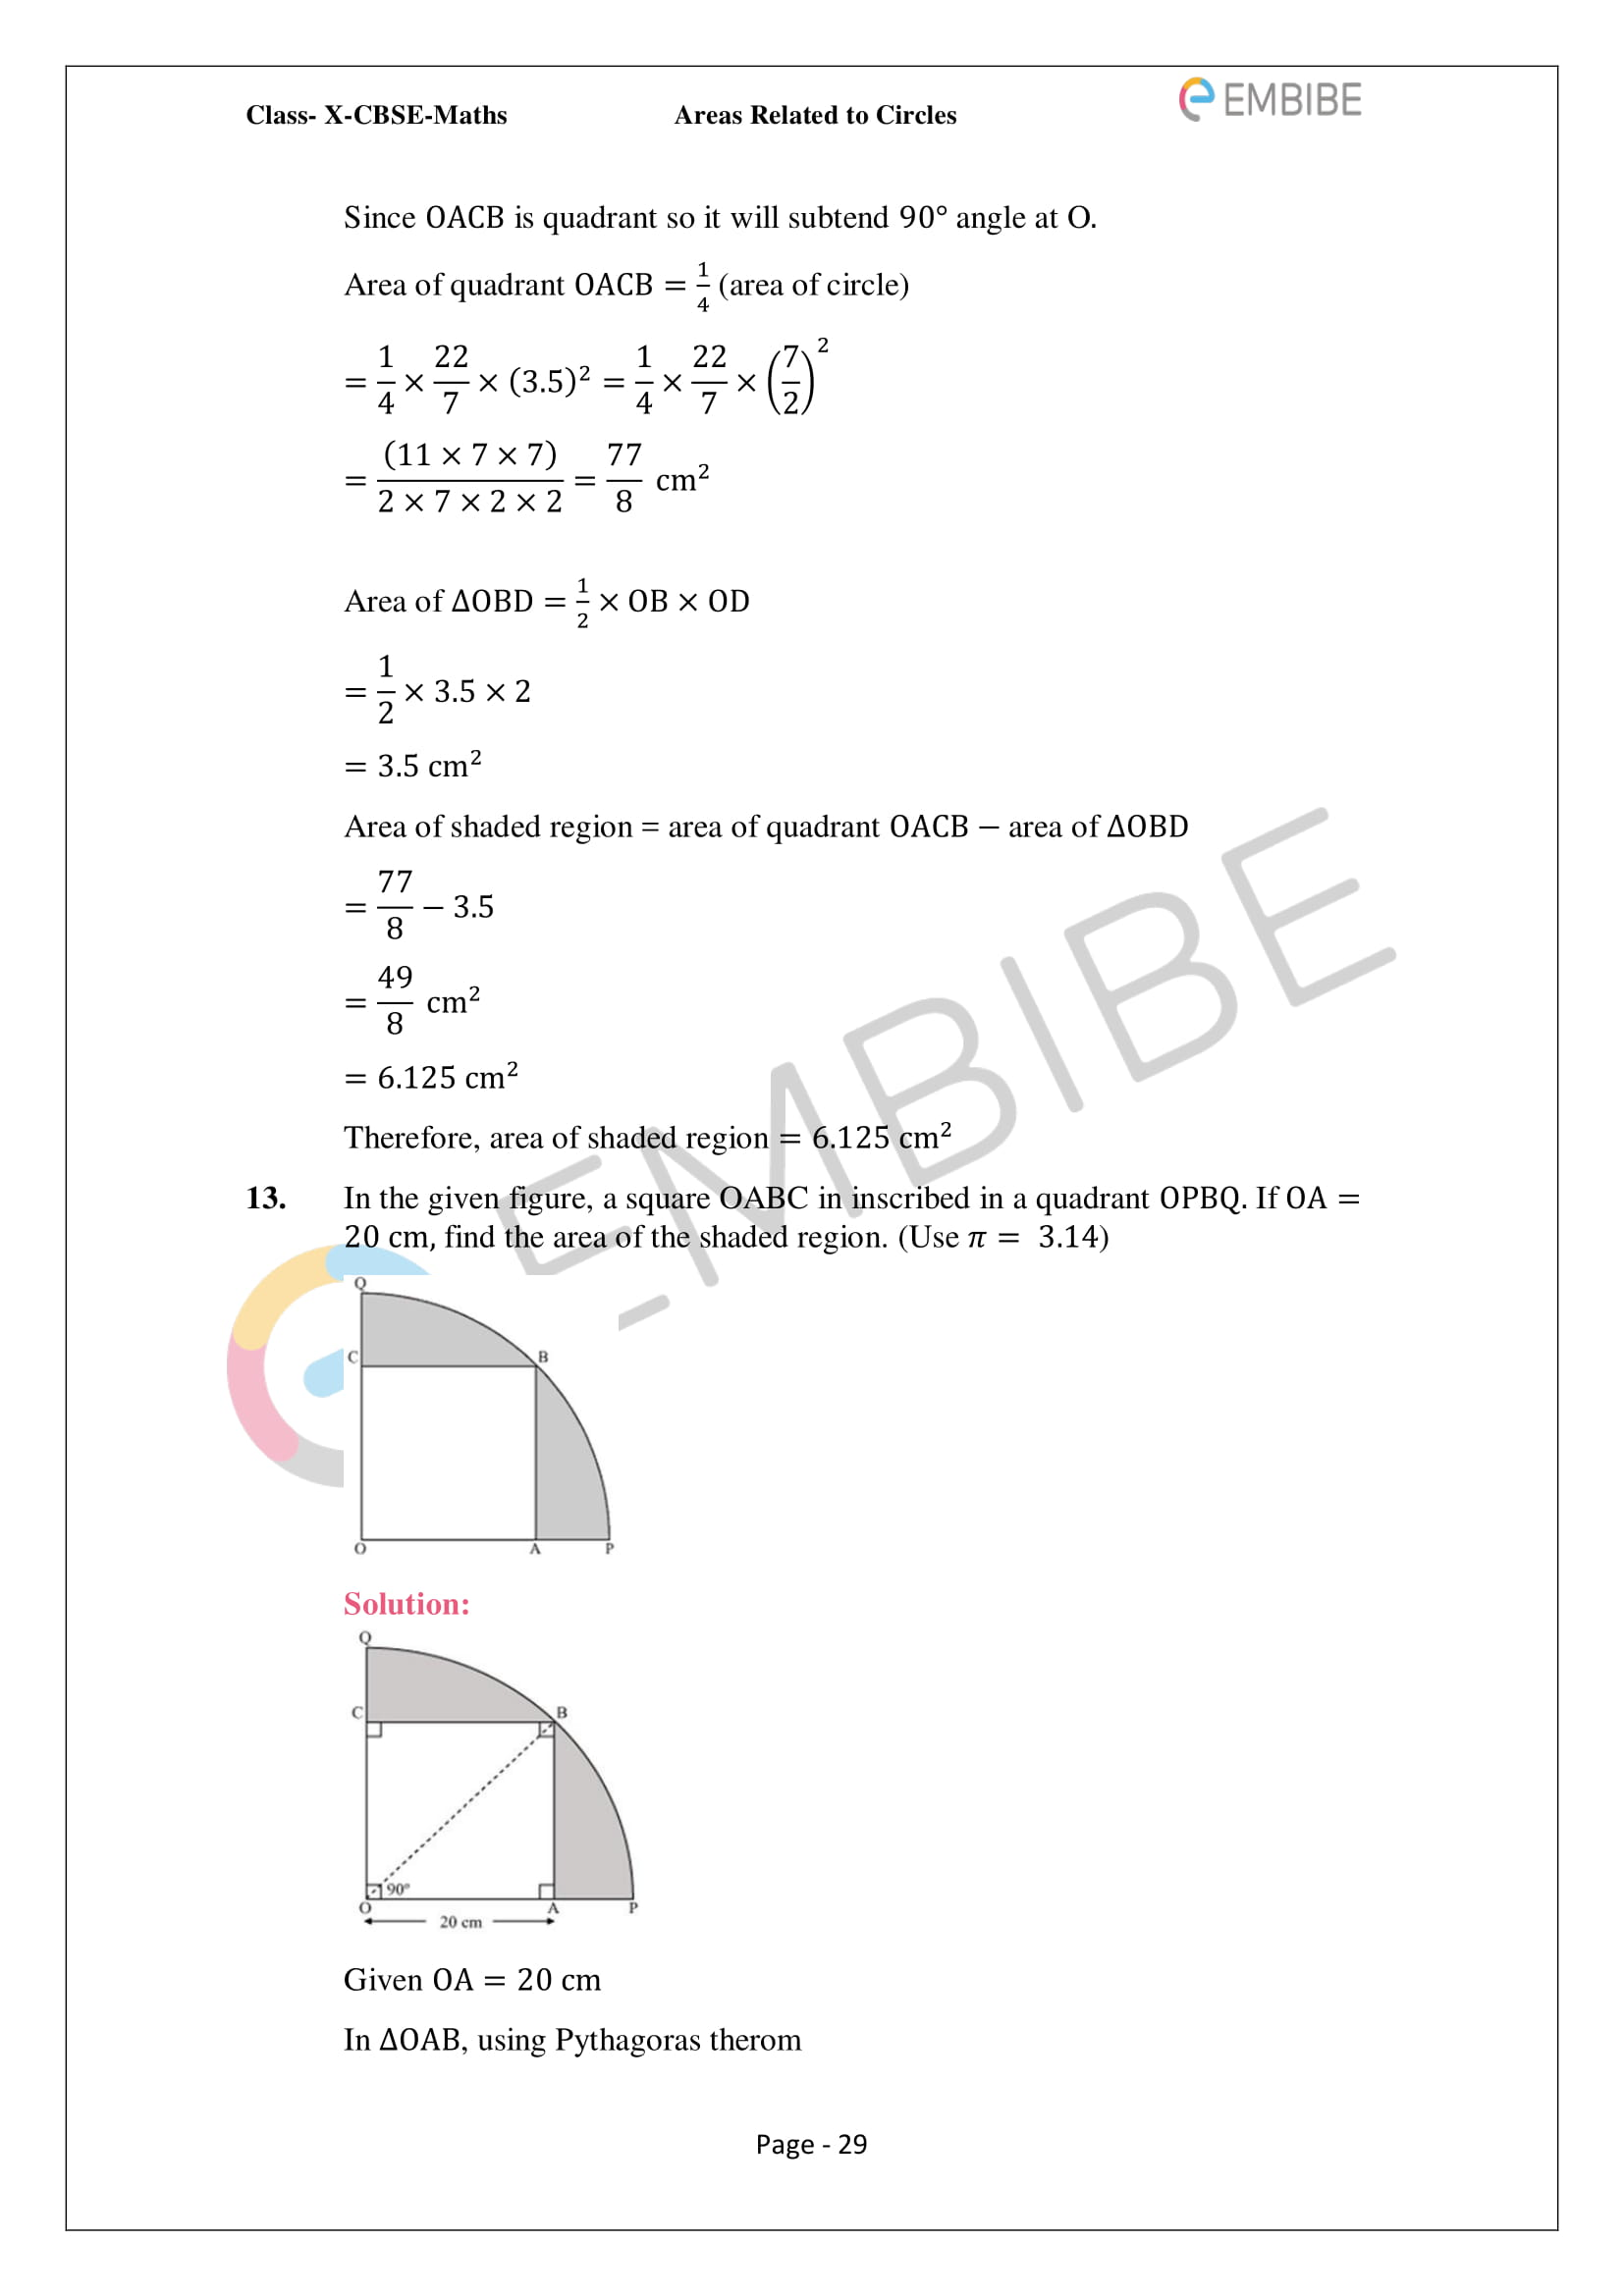 CBSE NCERT Solutions For Class 10 Maths Chapter 12 - Areas Related To Circle - 29